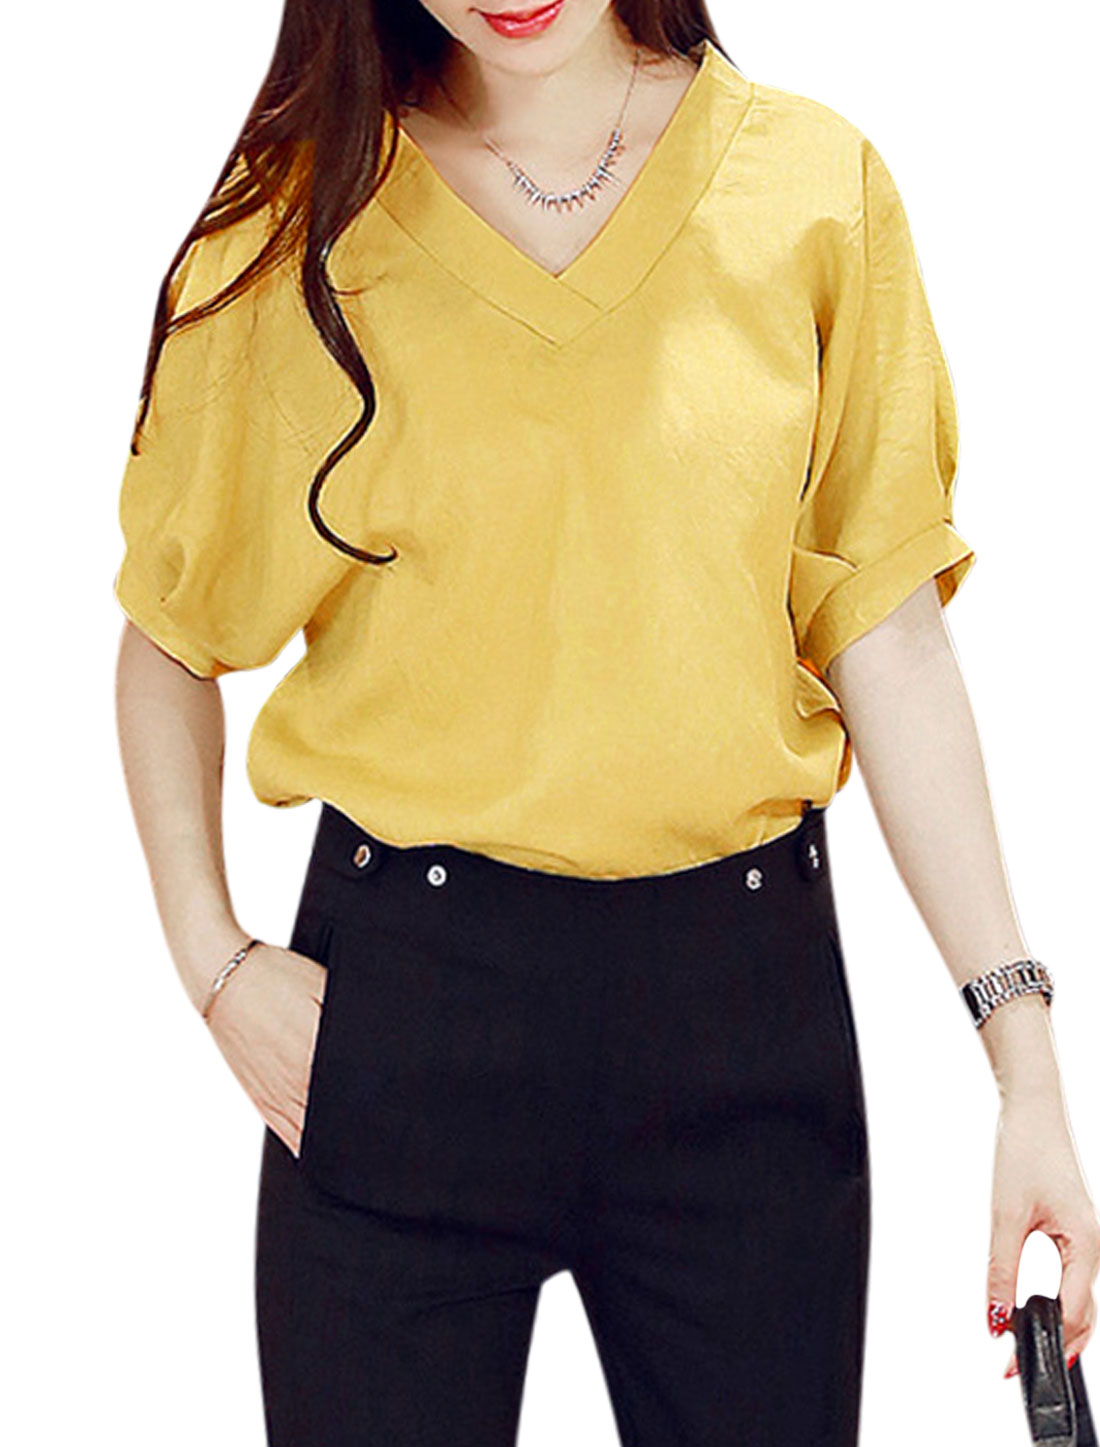 Woman Half Batwing Sleeves Loose Fit Slipover Leisure Top Curry S